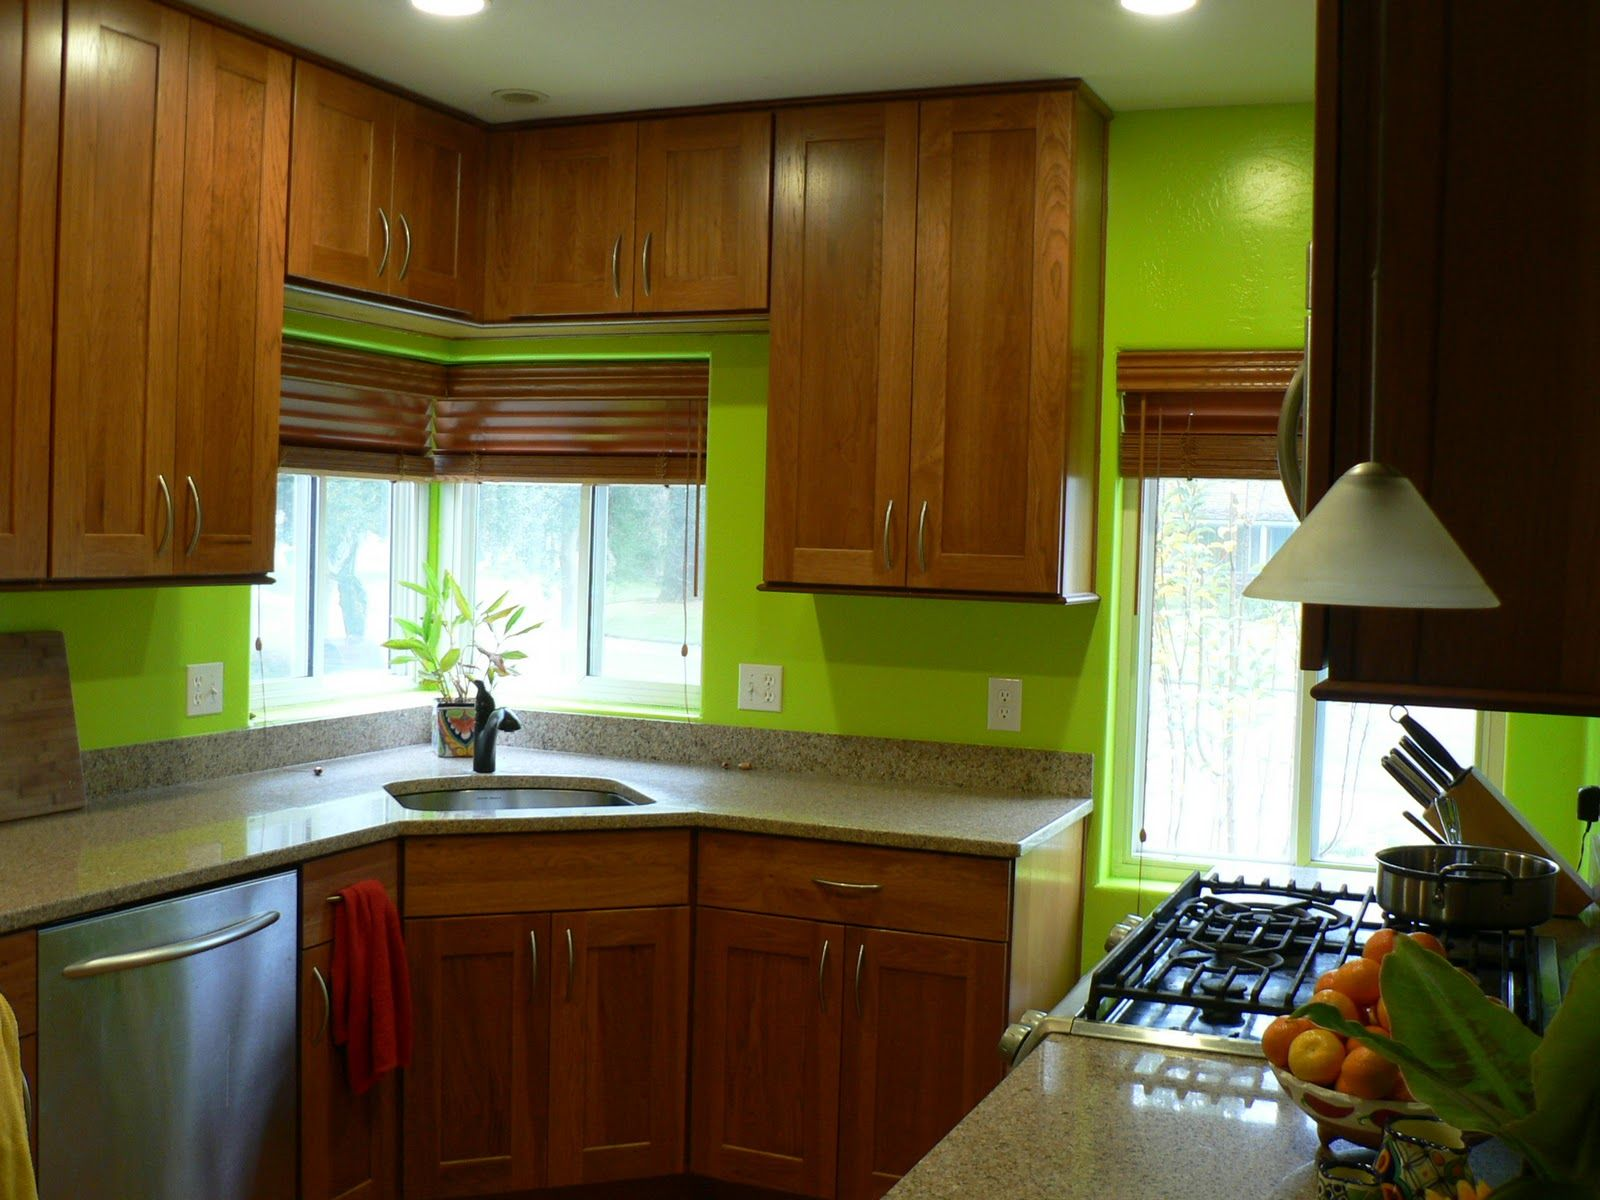 kitchens with green walls | My Bright Green Kitchen. I love her ...